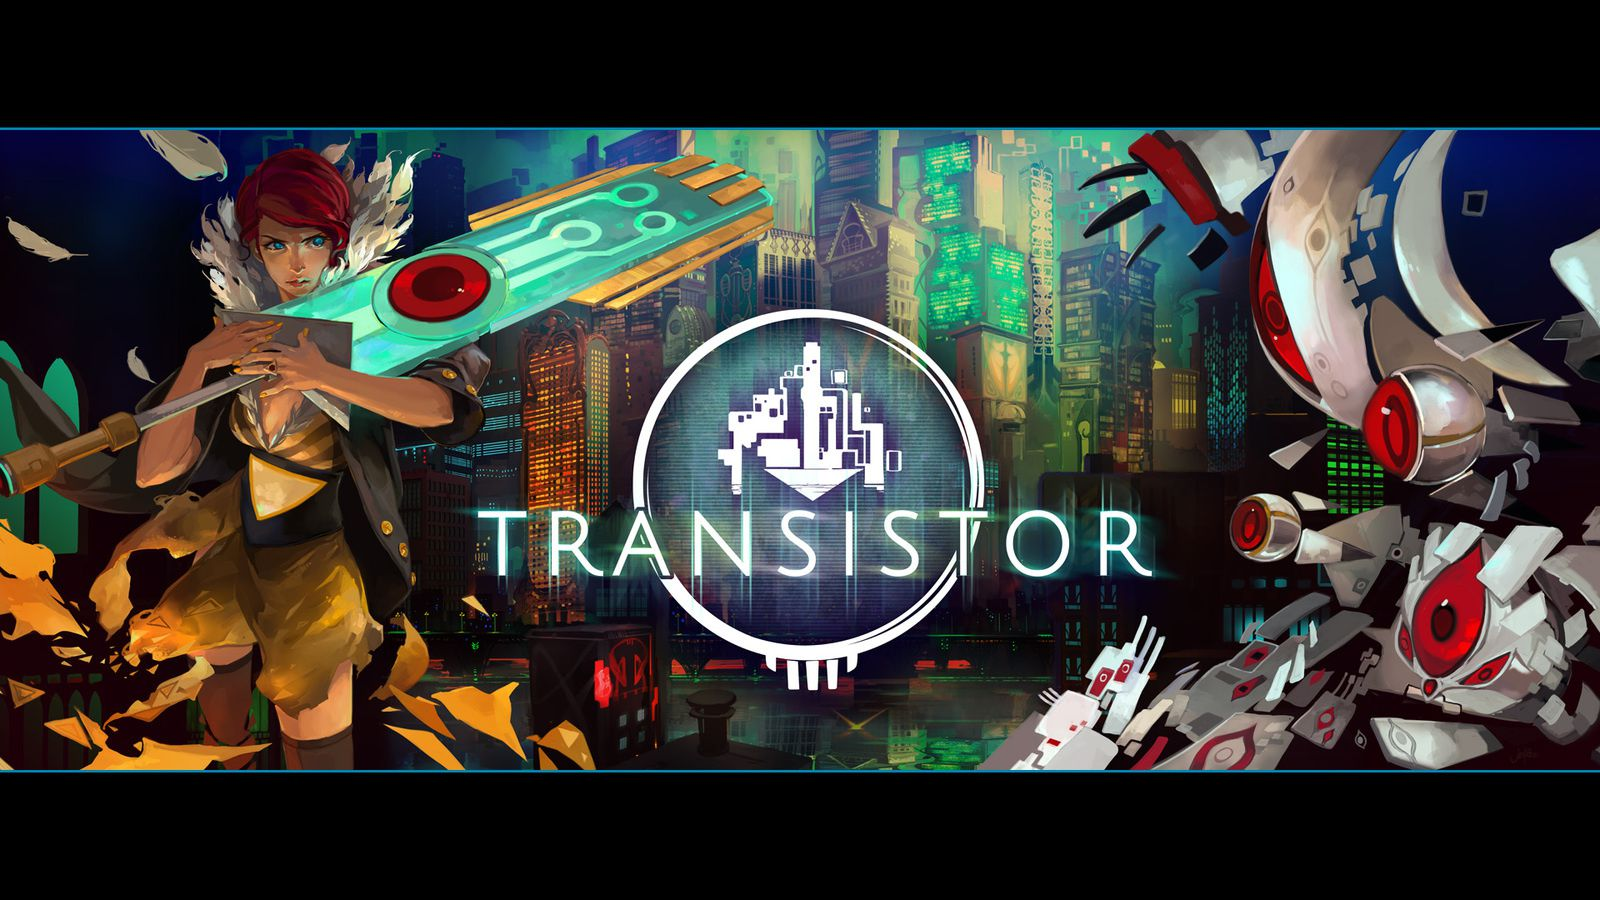 OH LA LA CETTE MUSIQUE! TRANSISTOR In Circles - DARREN KORB feat. ASHLEY BARRETT